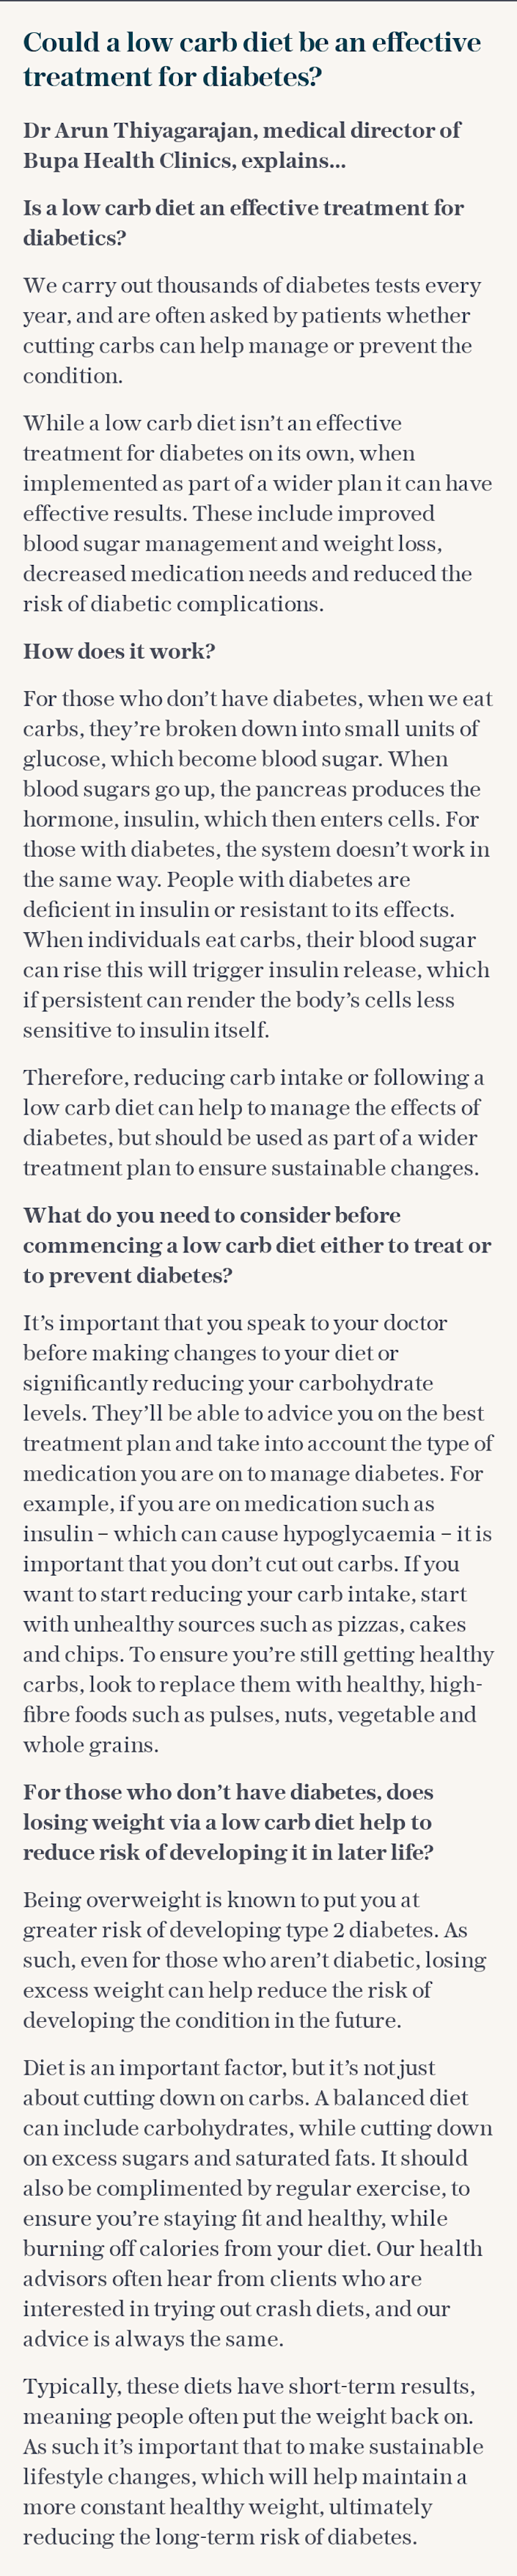 Could a low carb diet be an effective treatment for diabetes?